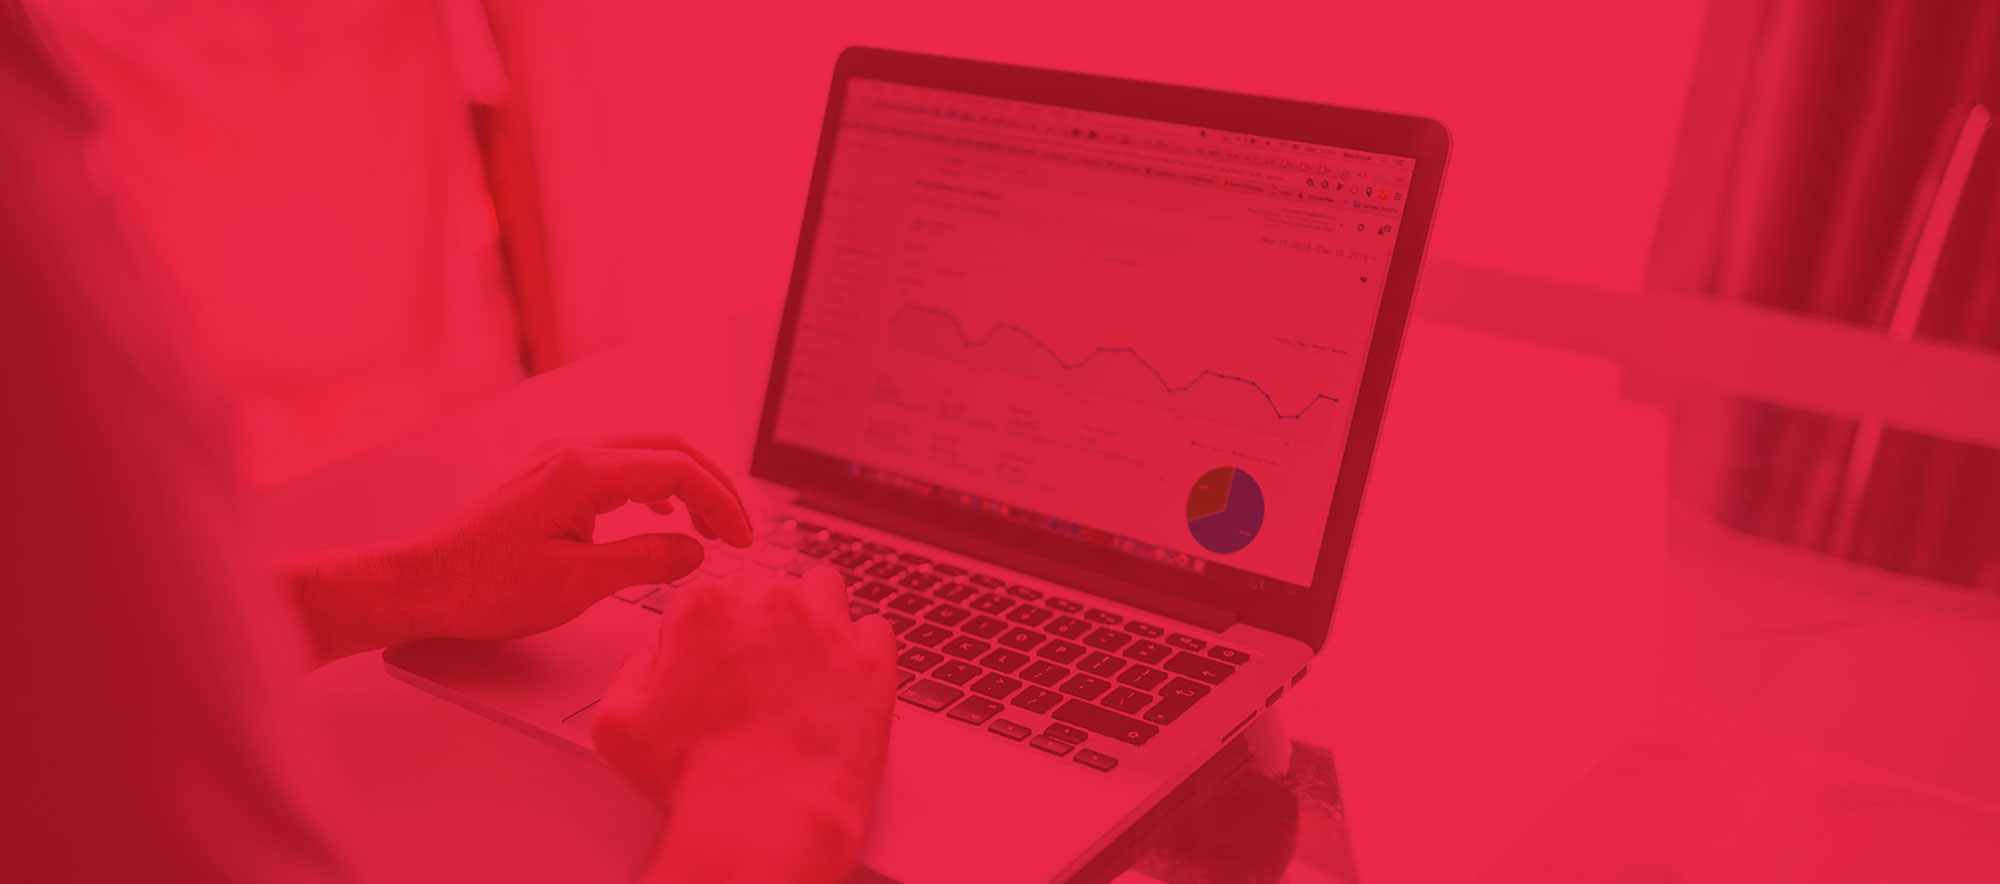 Search Engine Marketing Header; featuring a user on a laptop with SEO analytics stats on the screen and a red overlay